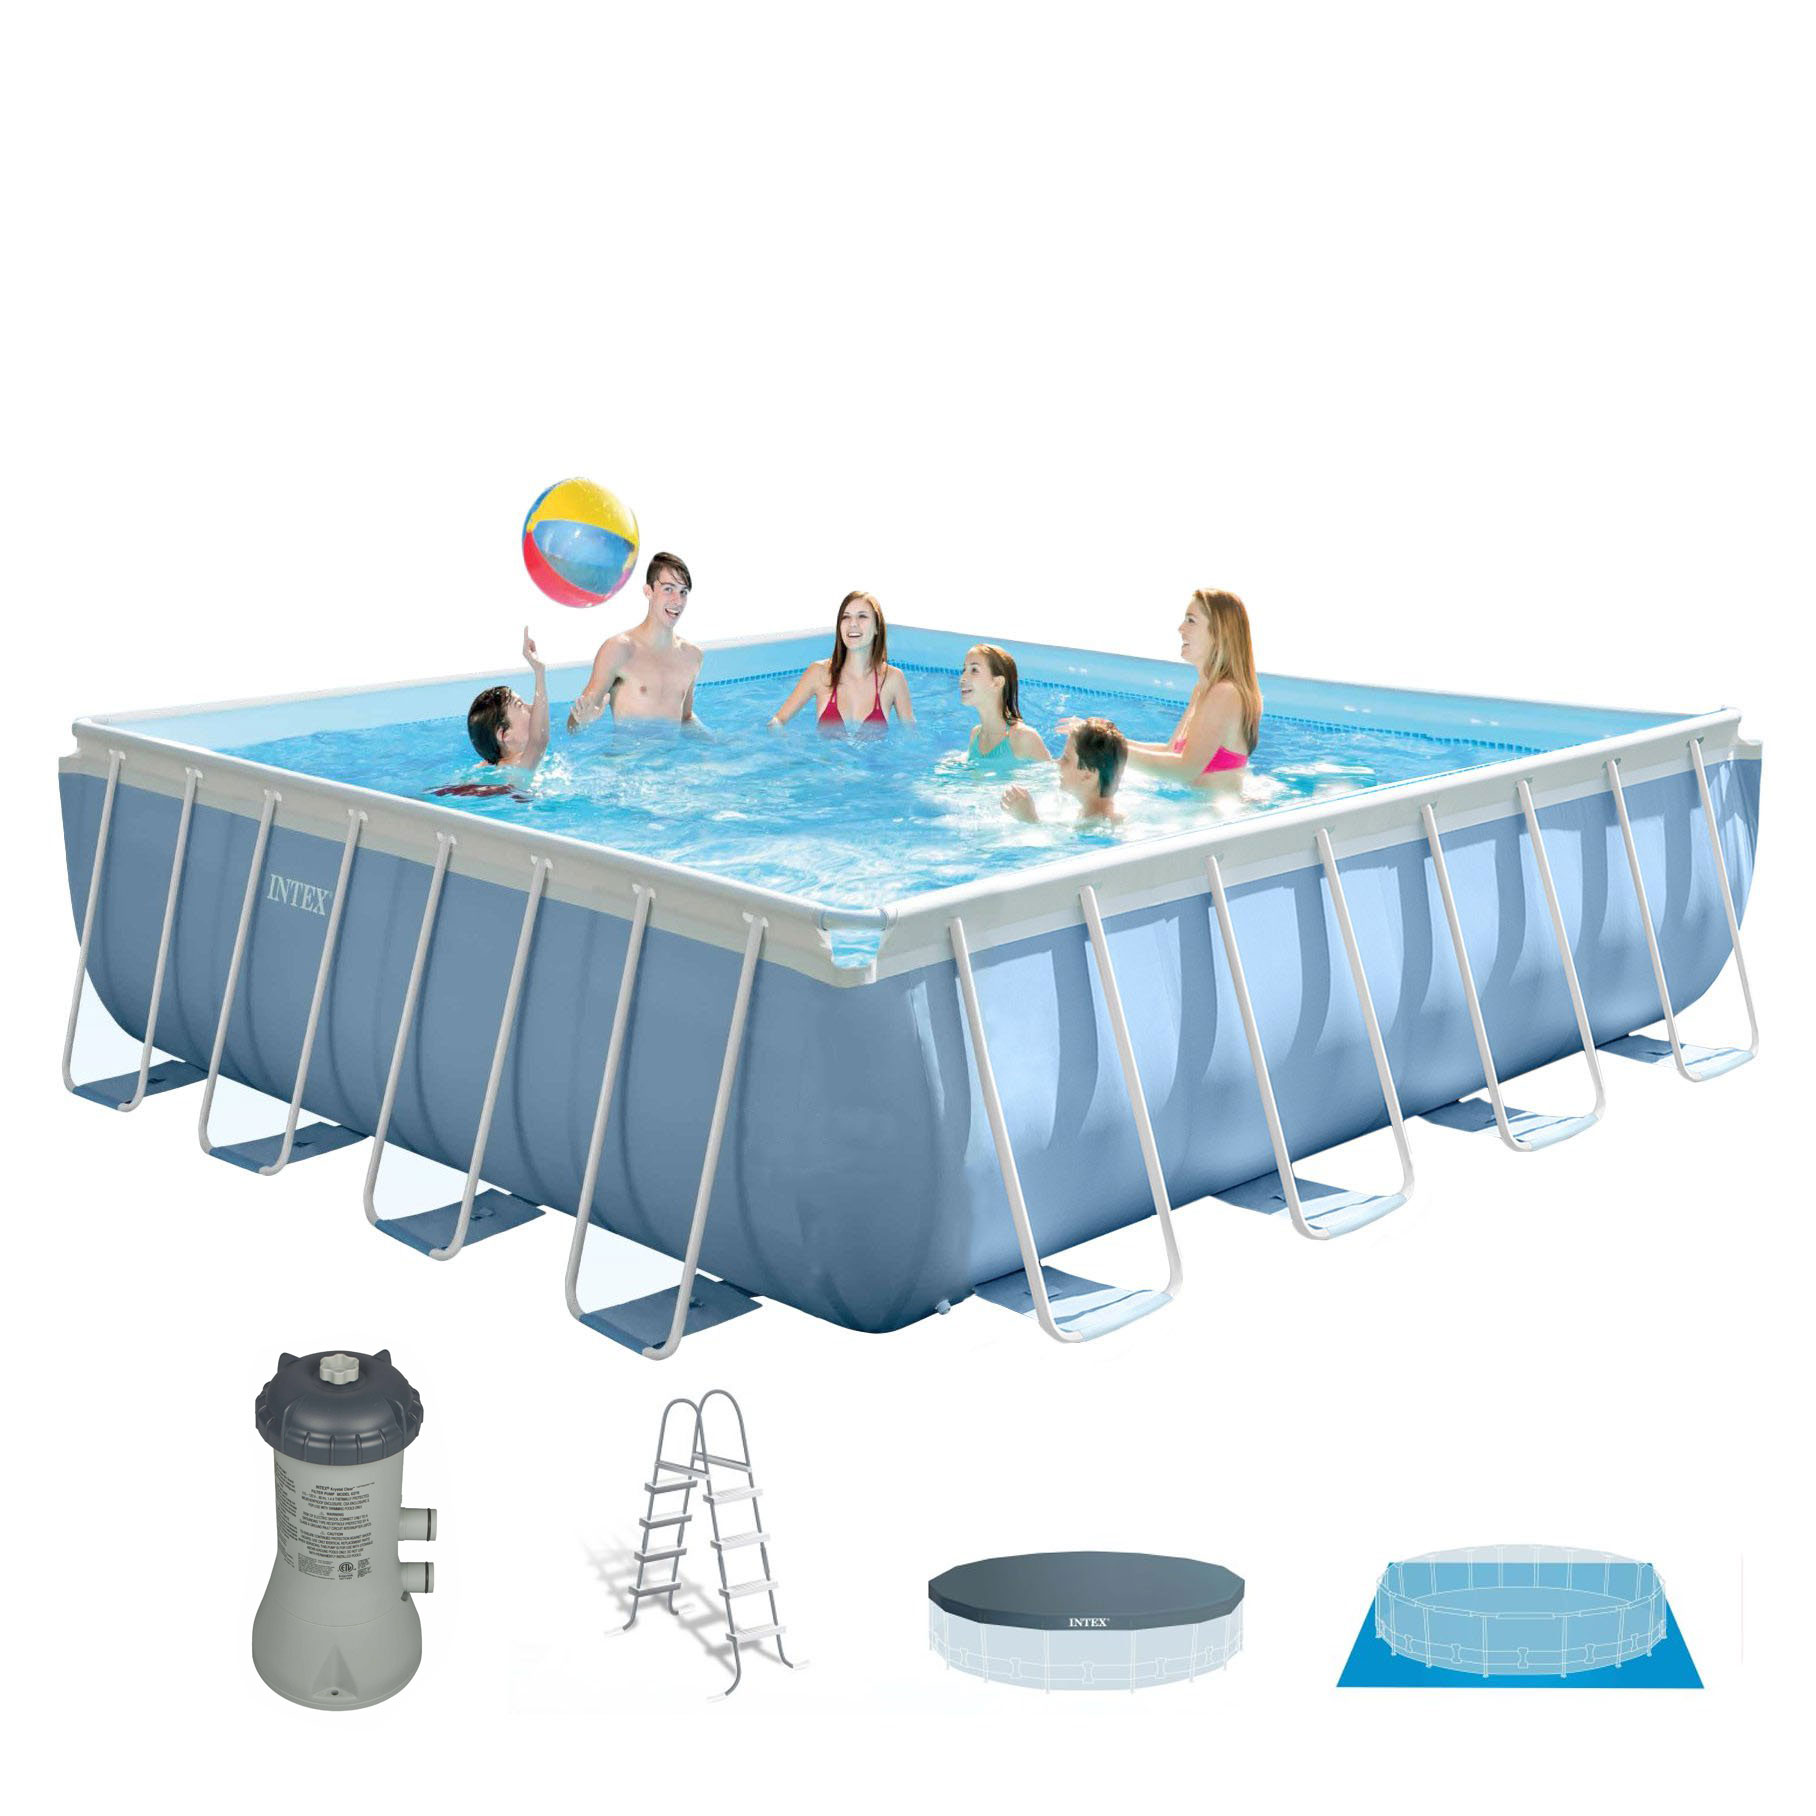 "Intex 14' x 42"" Square Frame Above Ground Pool Set with Filter Pump and Ladder"